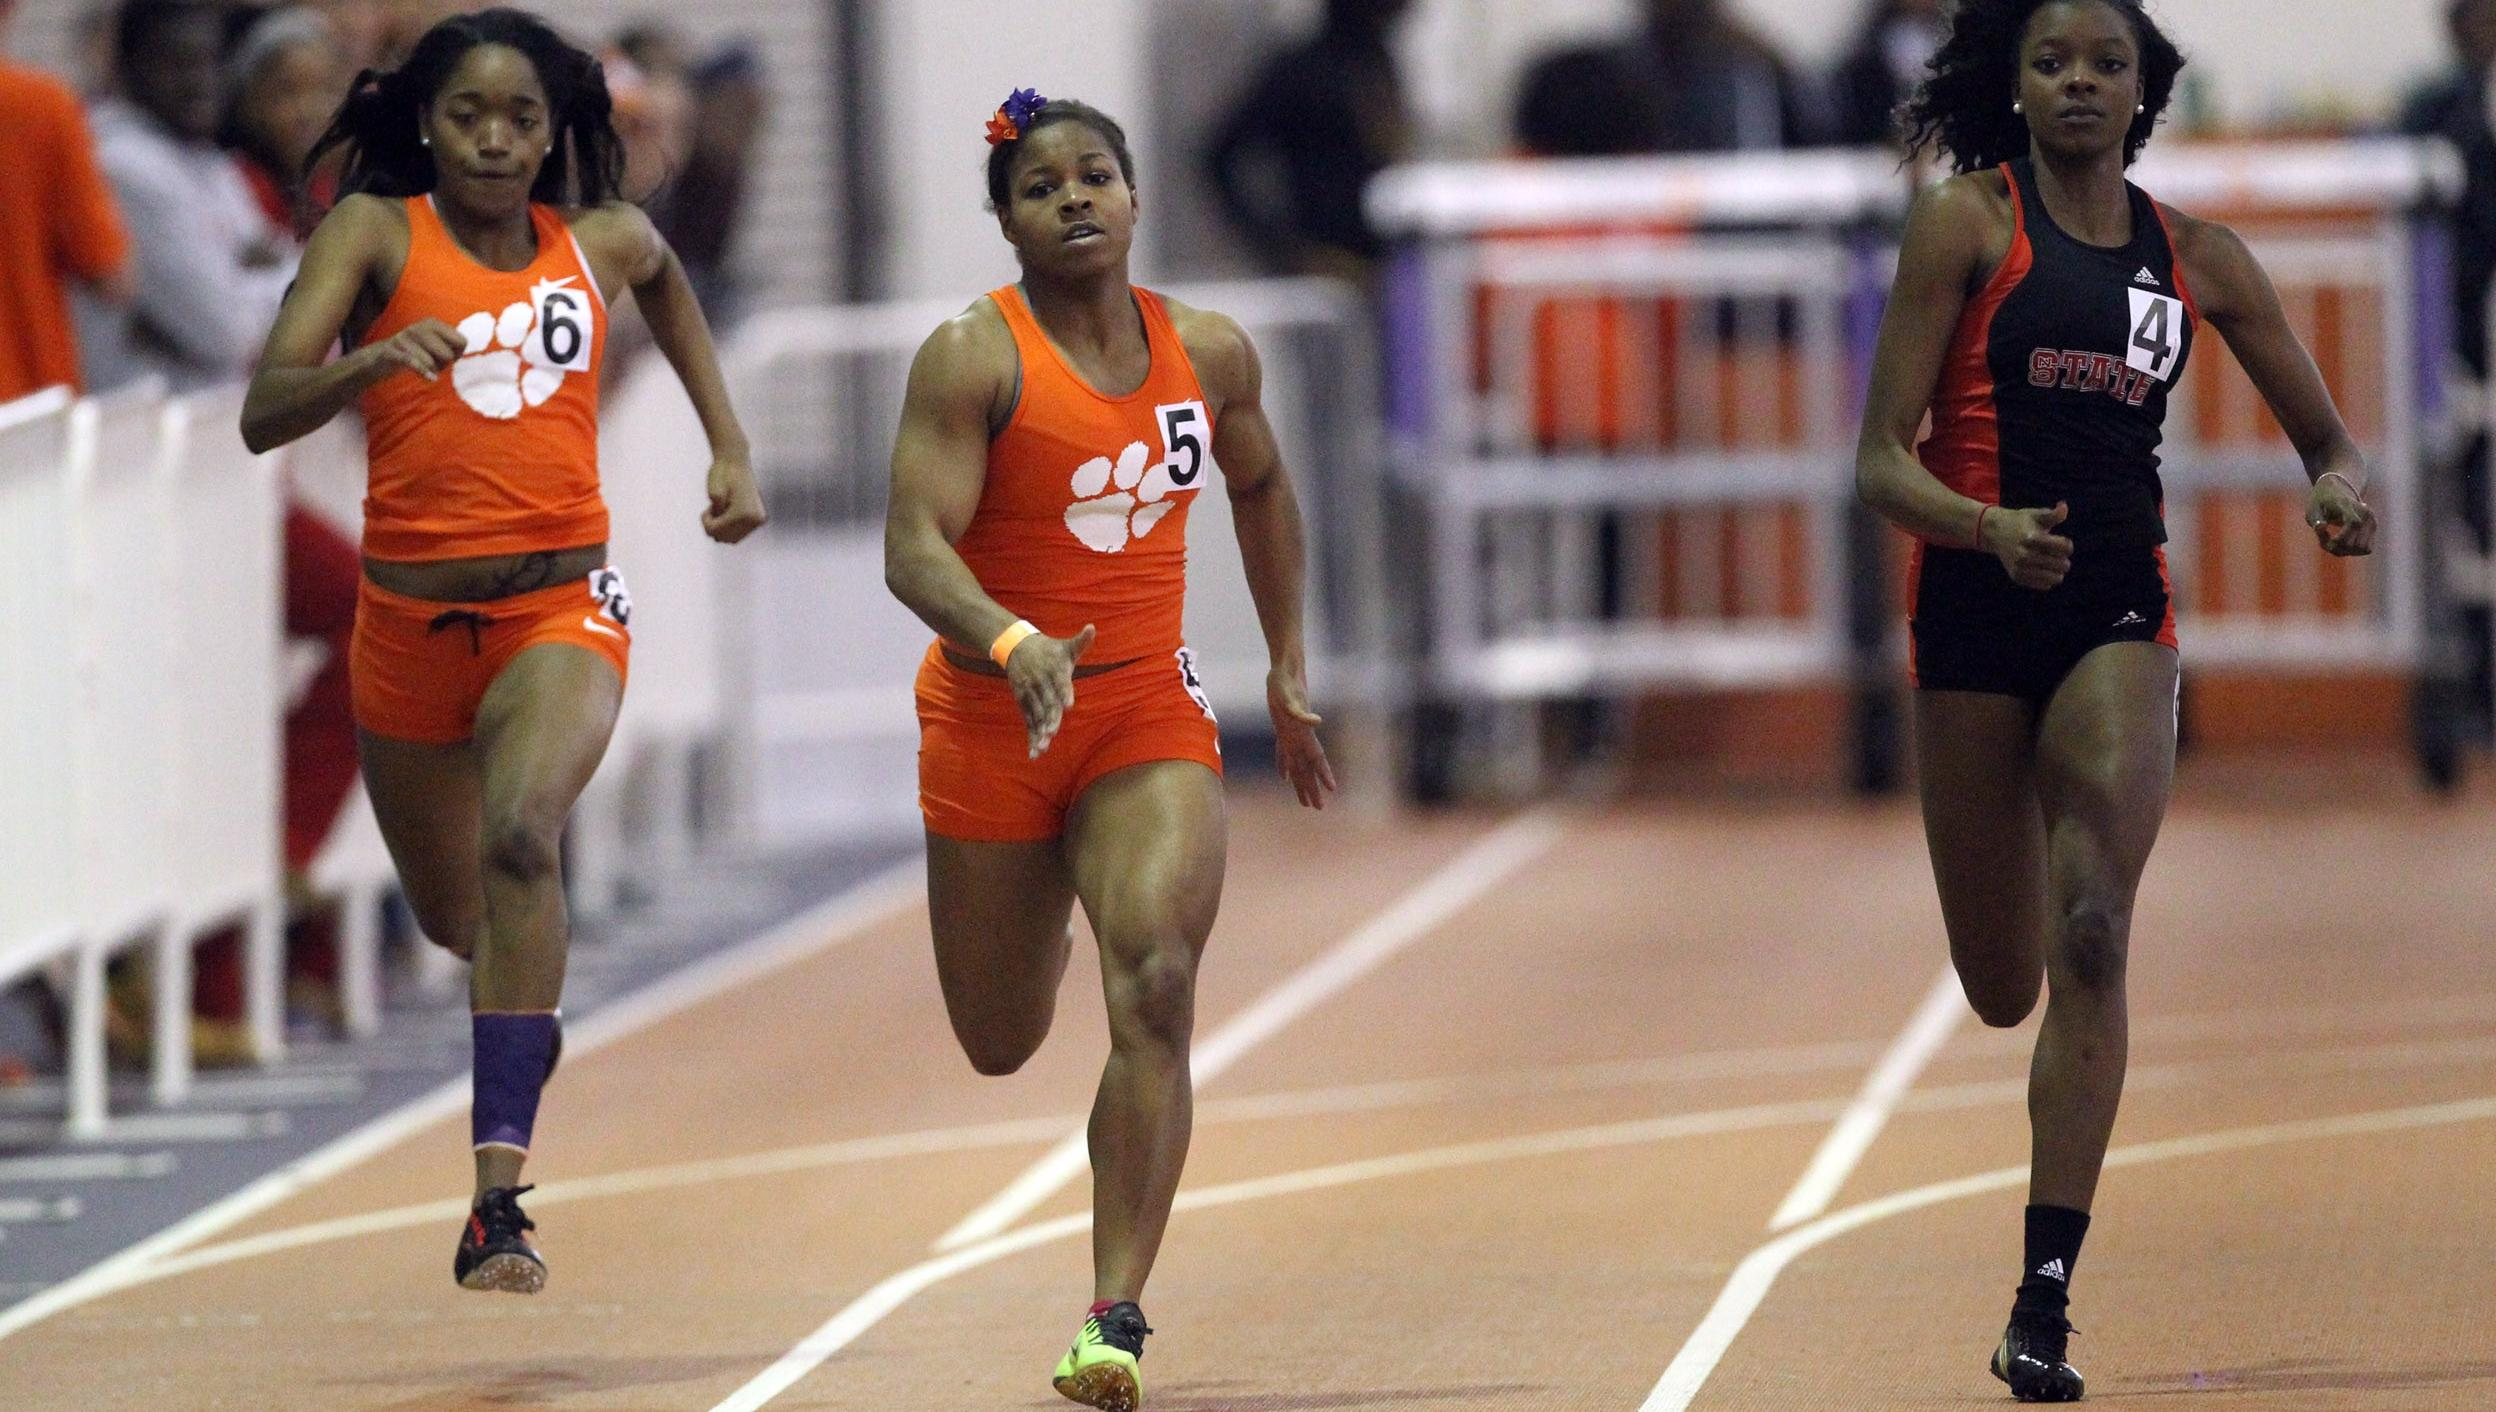 Four Season Bests Friday for Clemson at the Virginia Tech Challenge